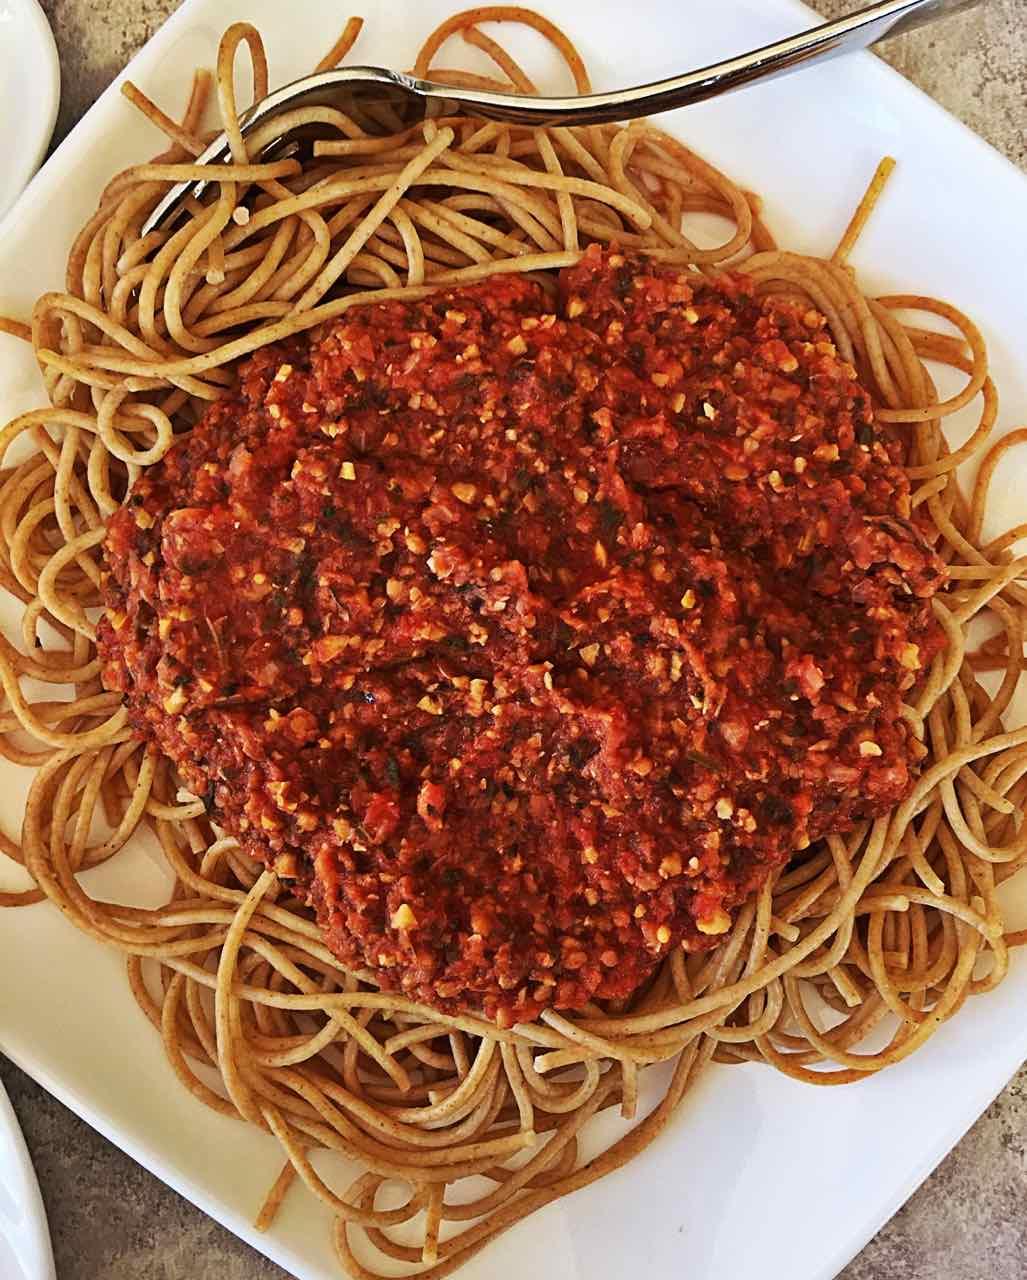 Vegan Healthy Marinara Sauce on Spaghetti